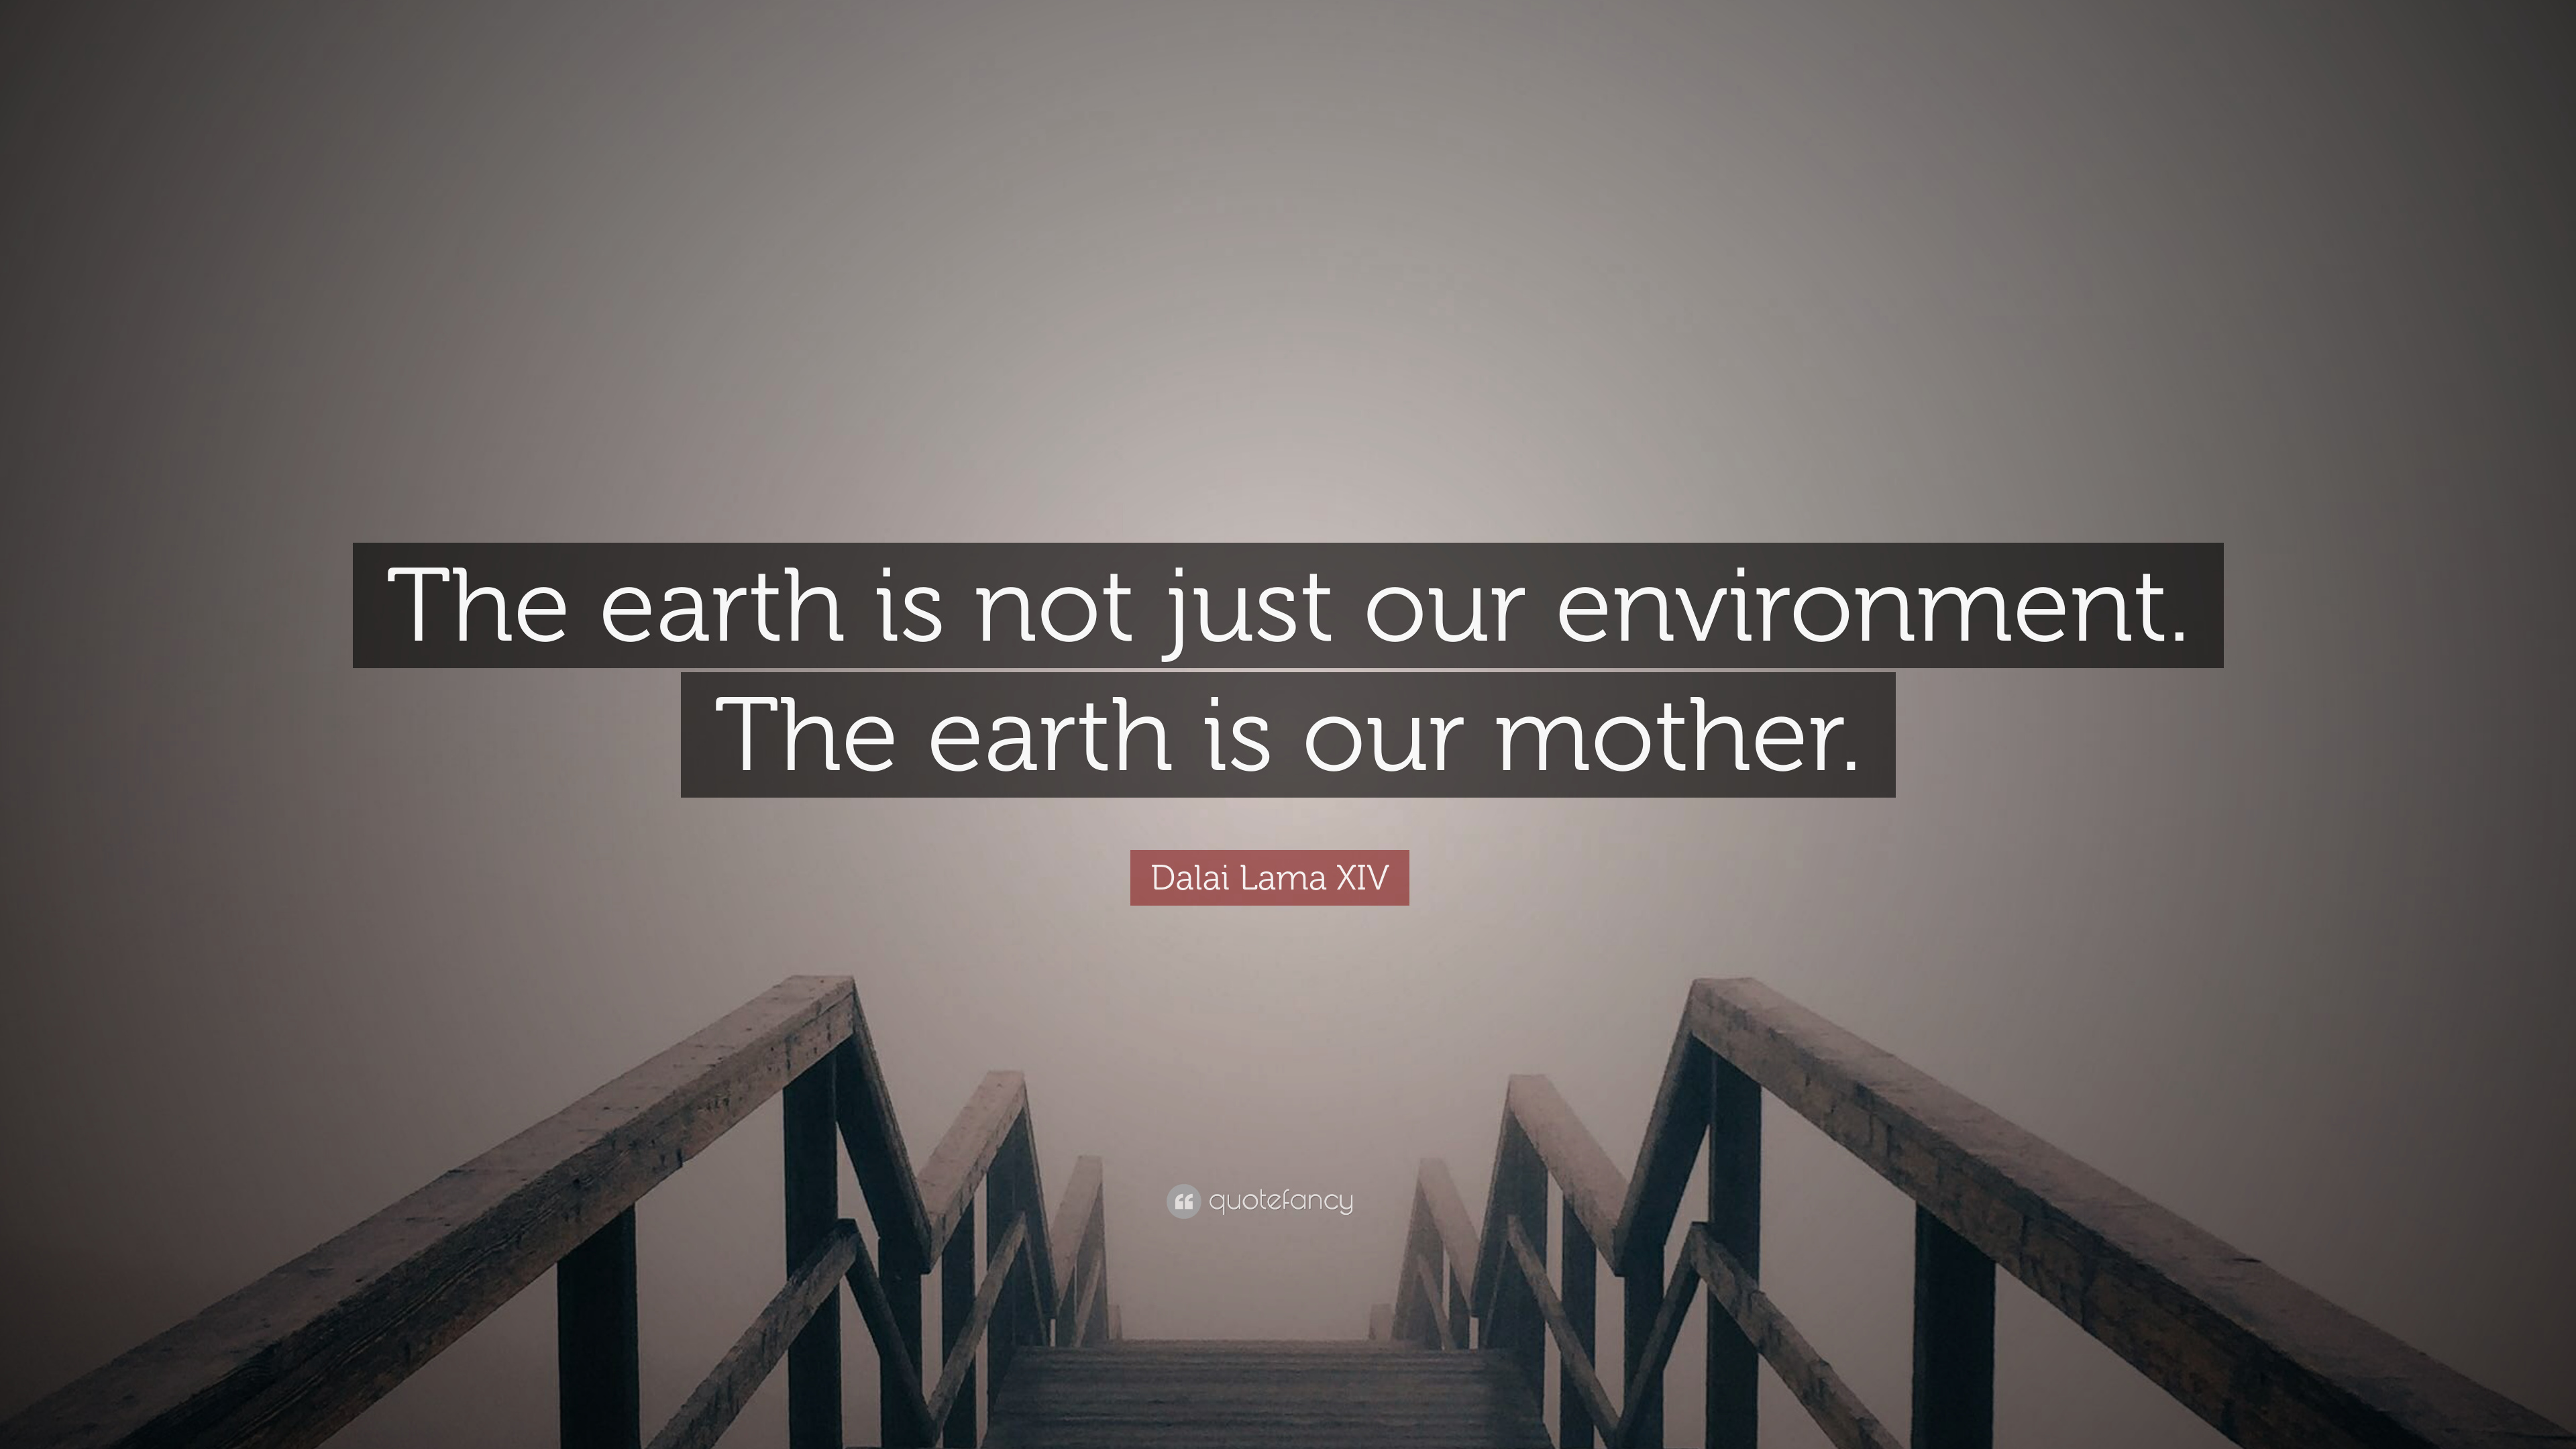 Dalai Lama Xiv Quote The Earth Is Not Just Our Environment The